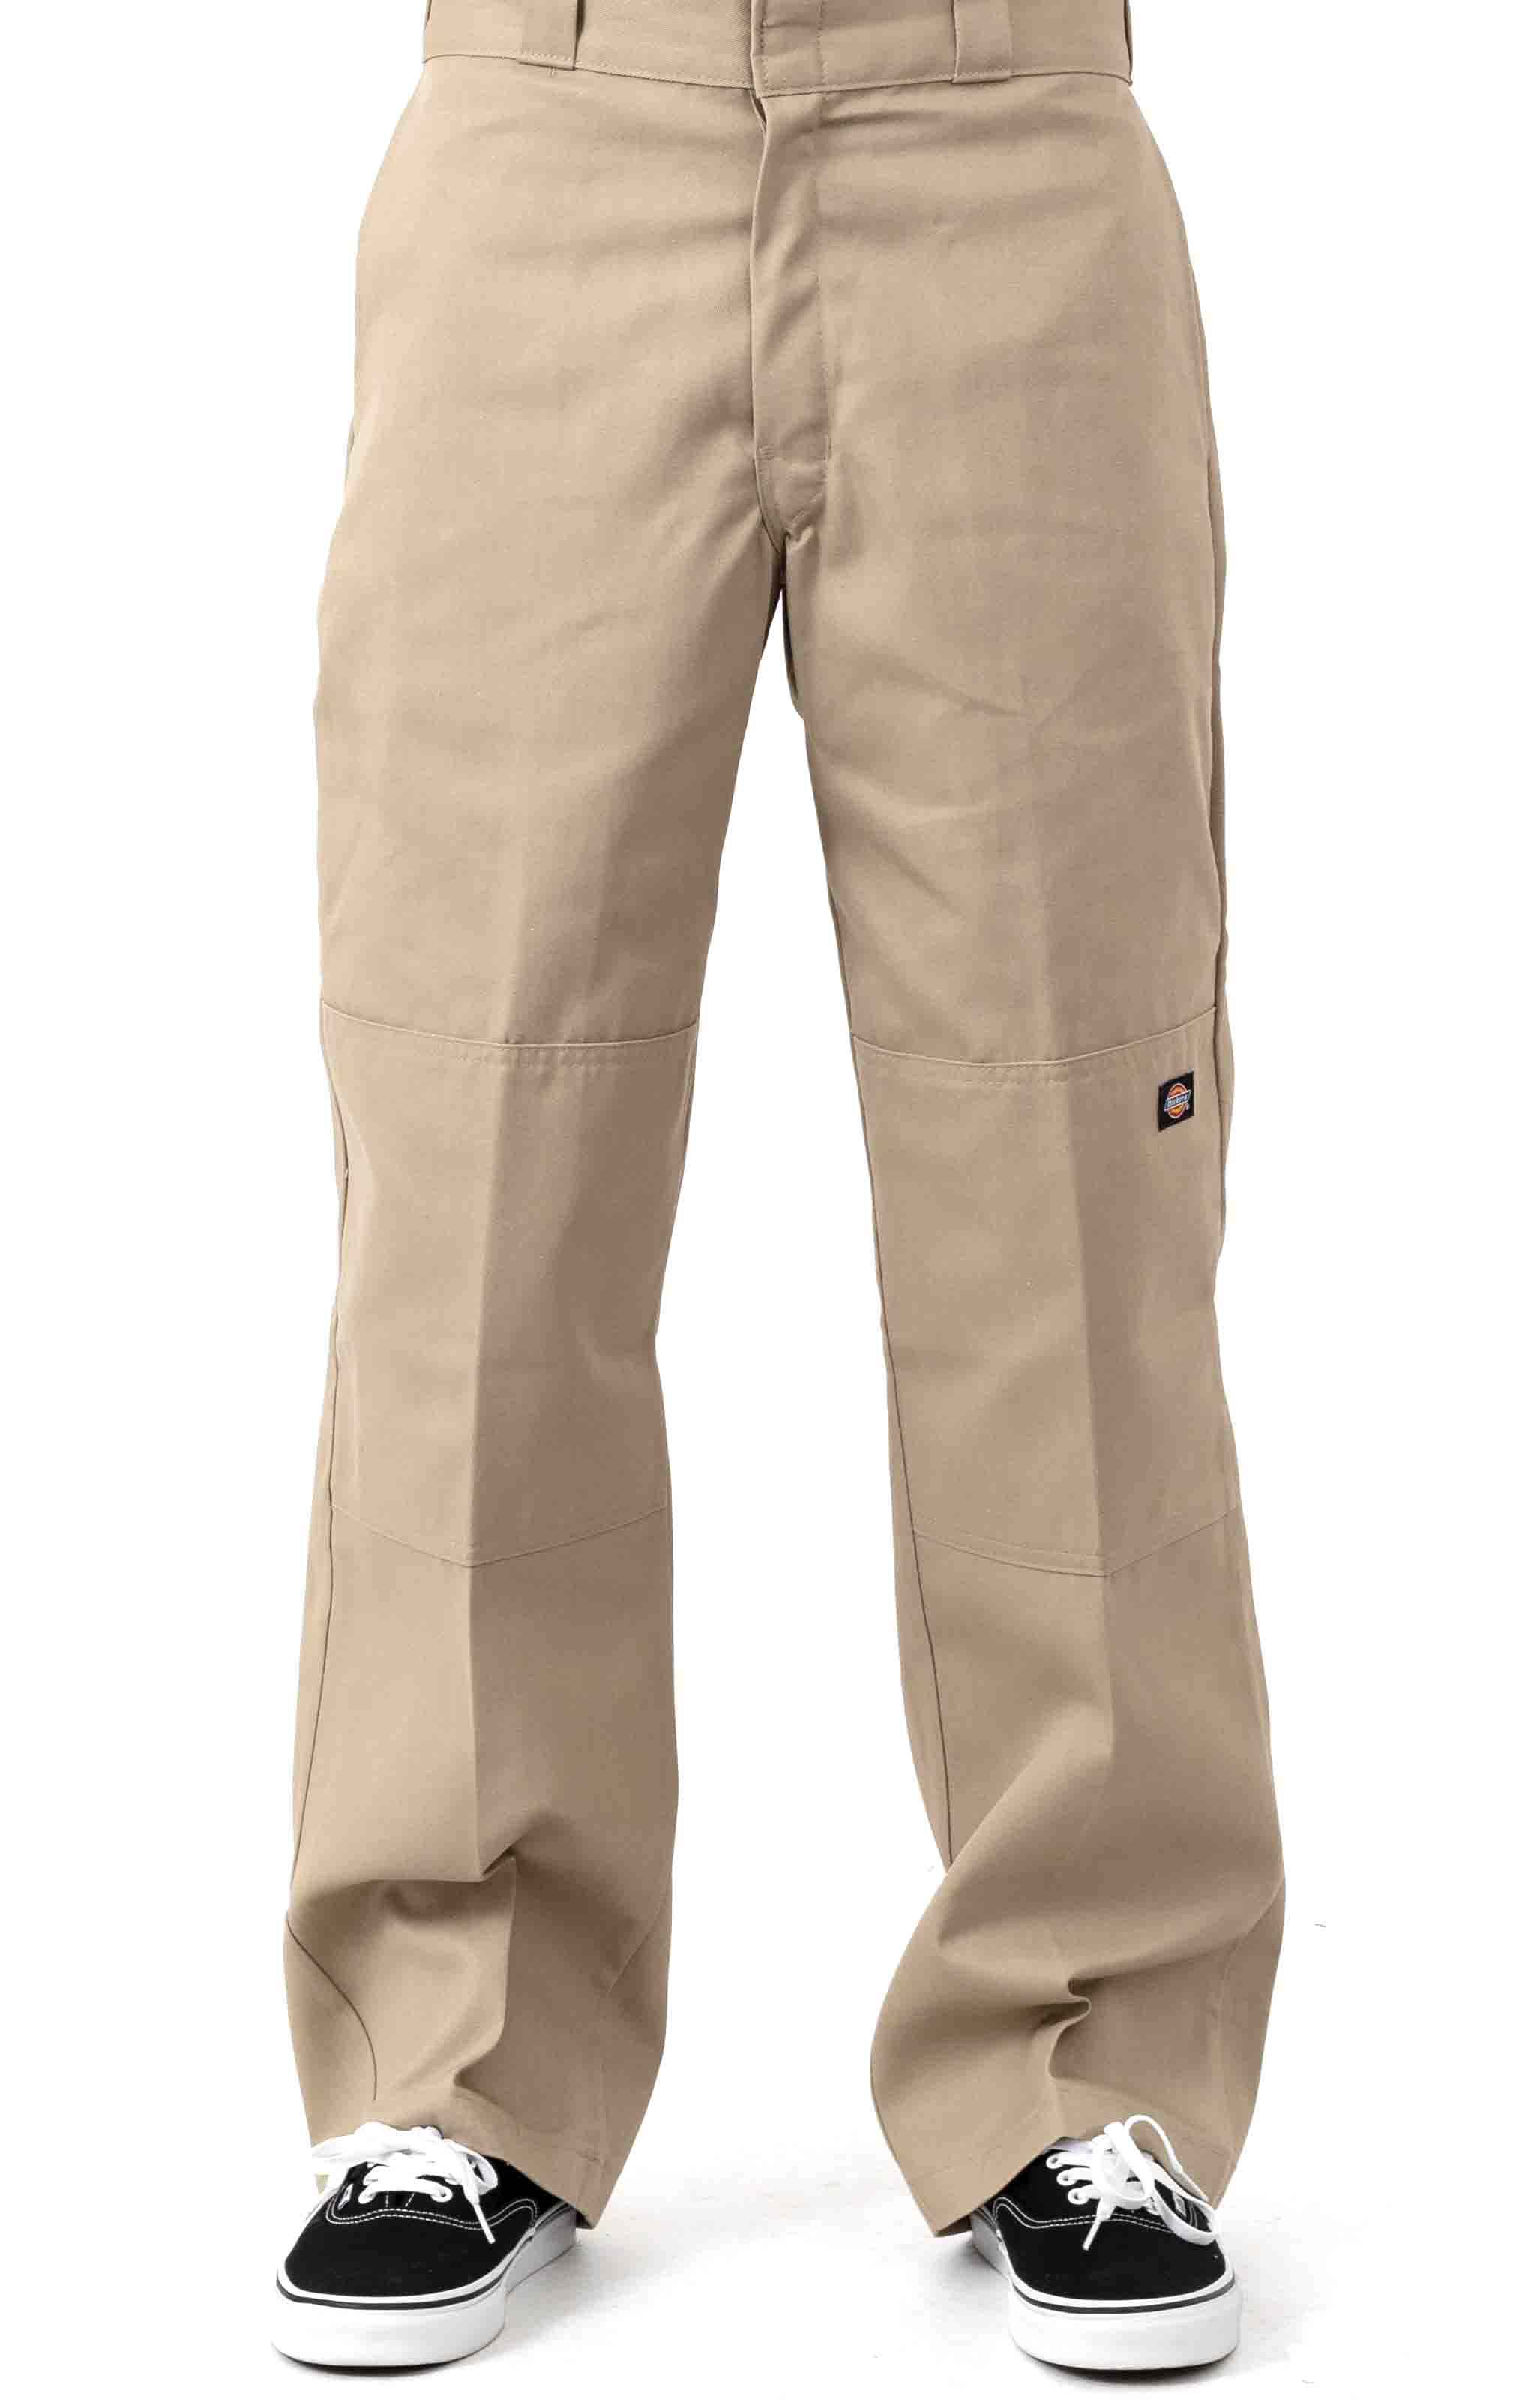 (85283KH) Loose Fit Double Knee Work Pants - Military Khaki